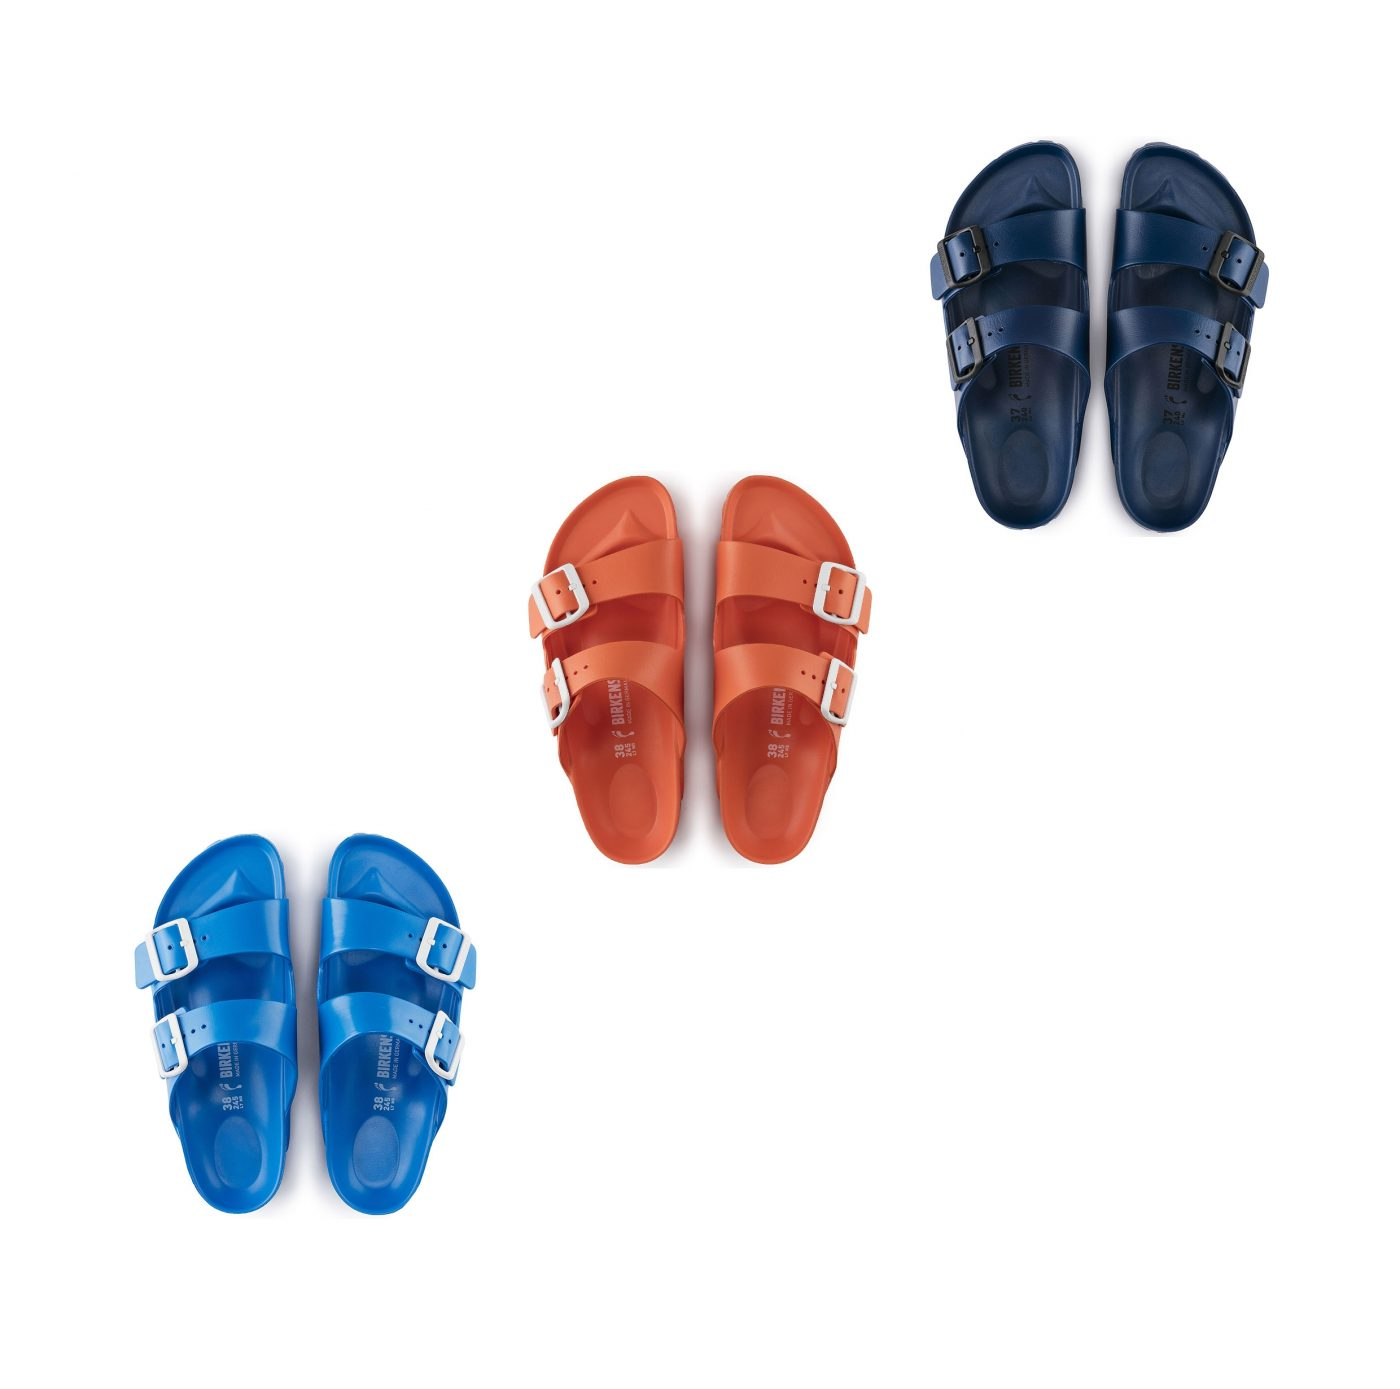 birks 3 1400x1389 - Seashore-ready vacation sandals